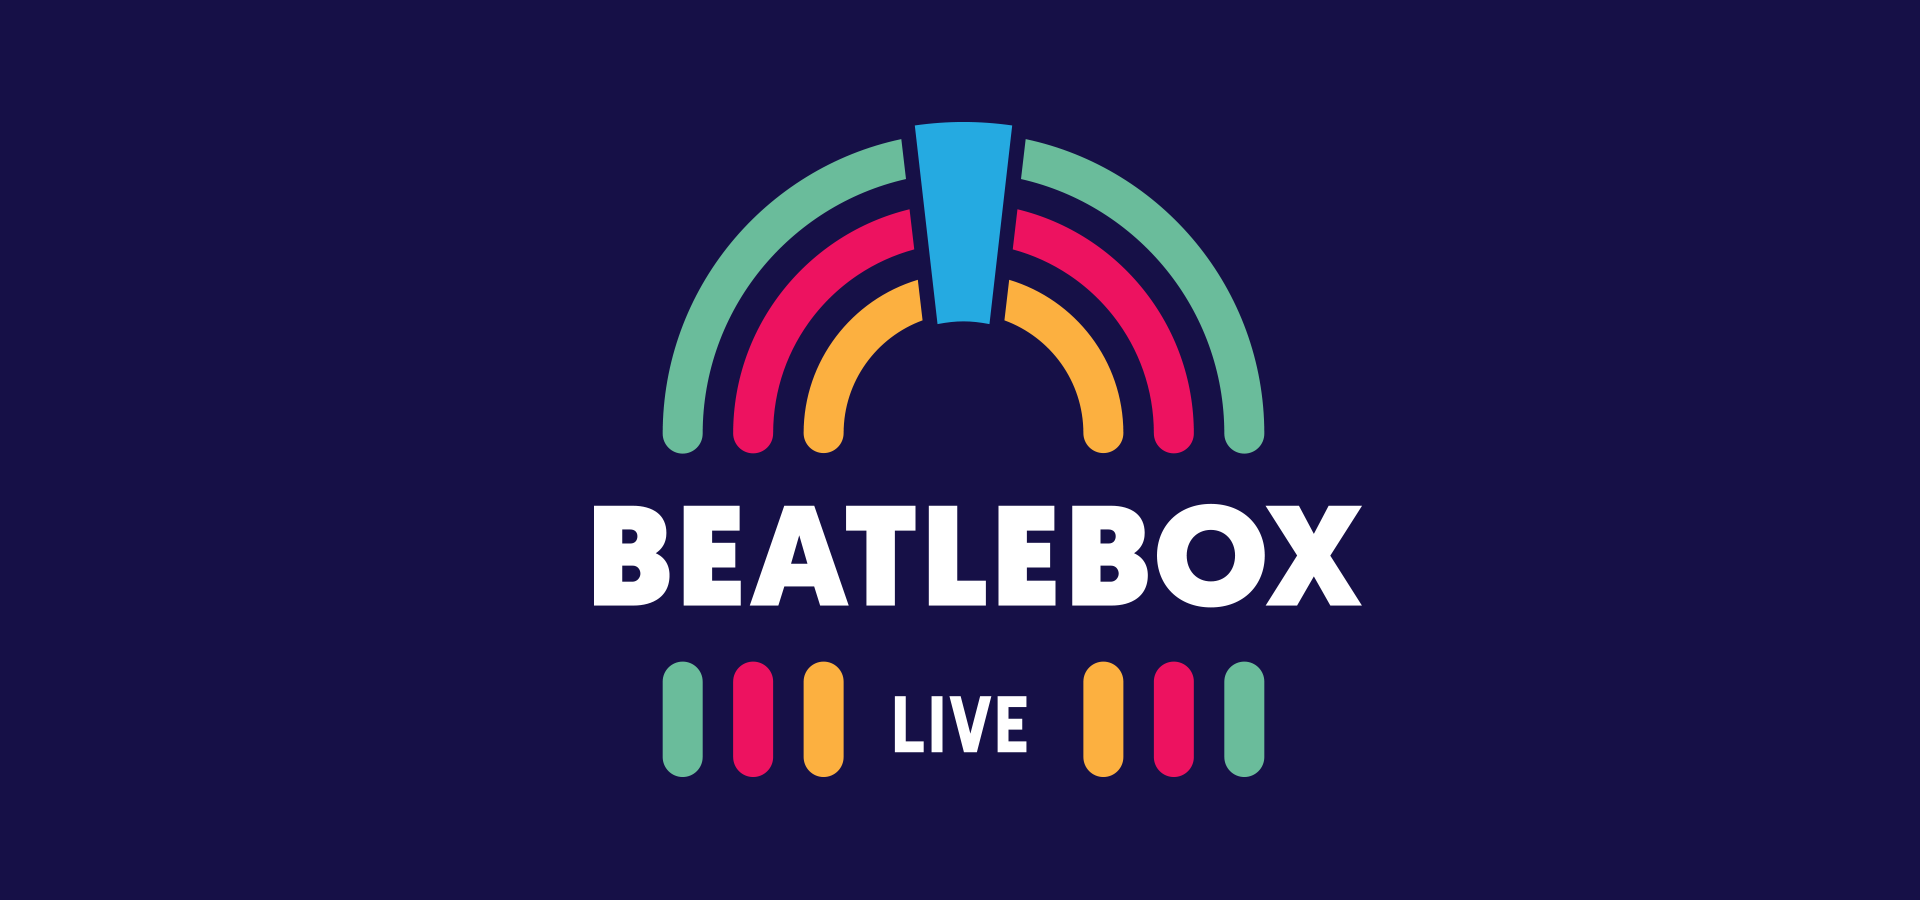 Beatlebox: unique musical entertainment